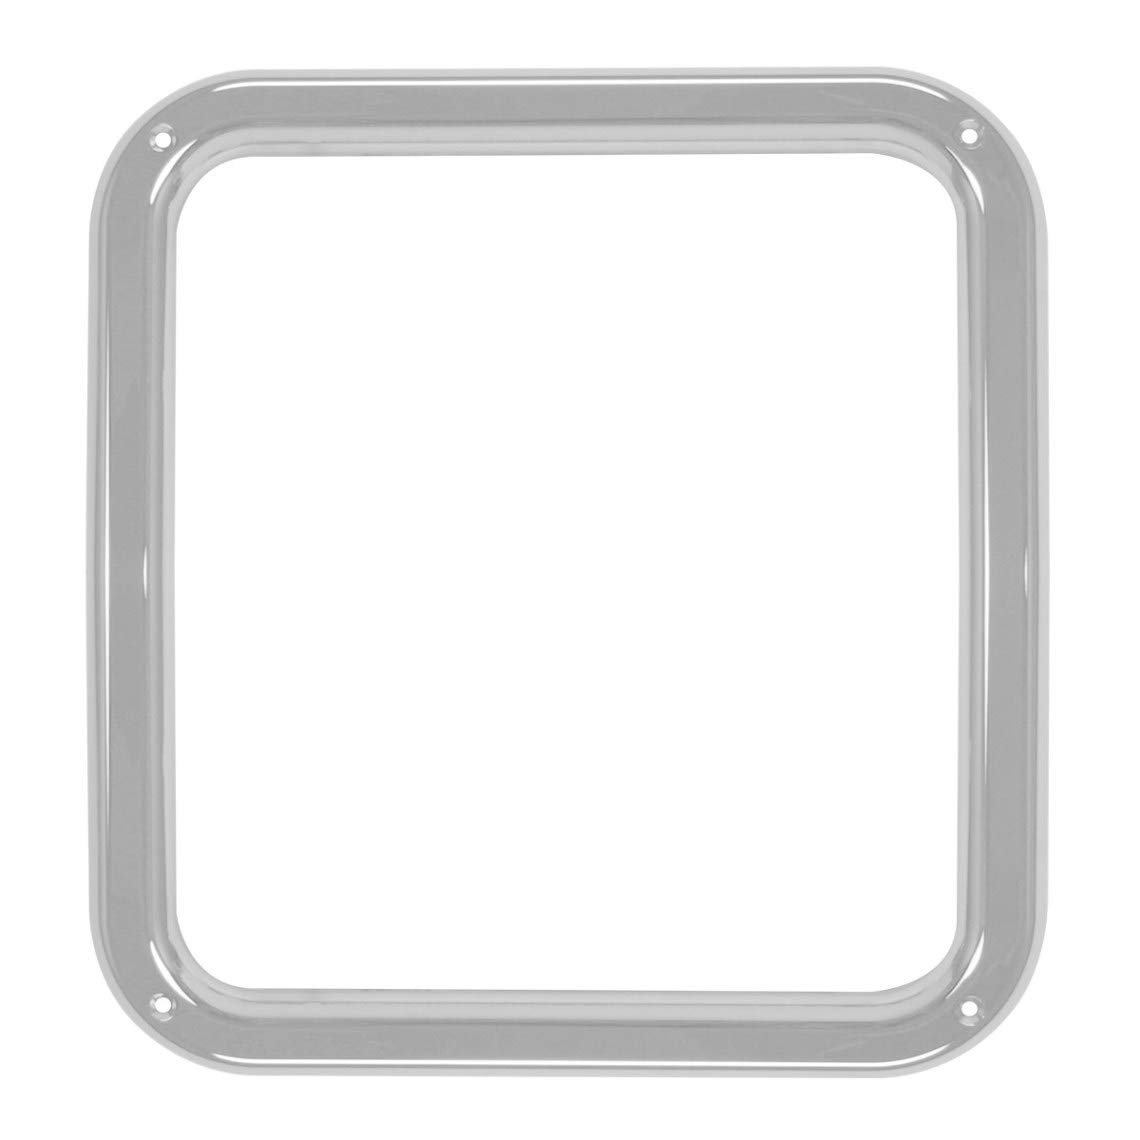 KW W900s GG Grand General 97555 Chrome Plated Plastic Outside Daylight Cab Door Window Trim